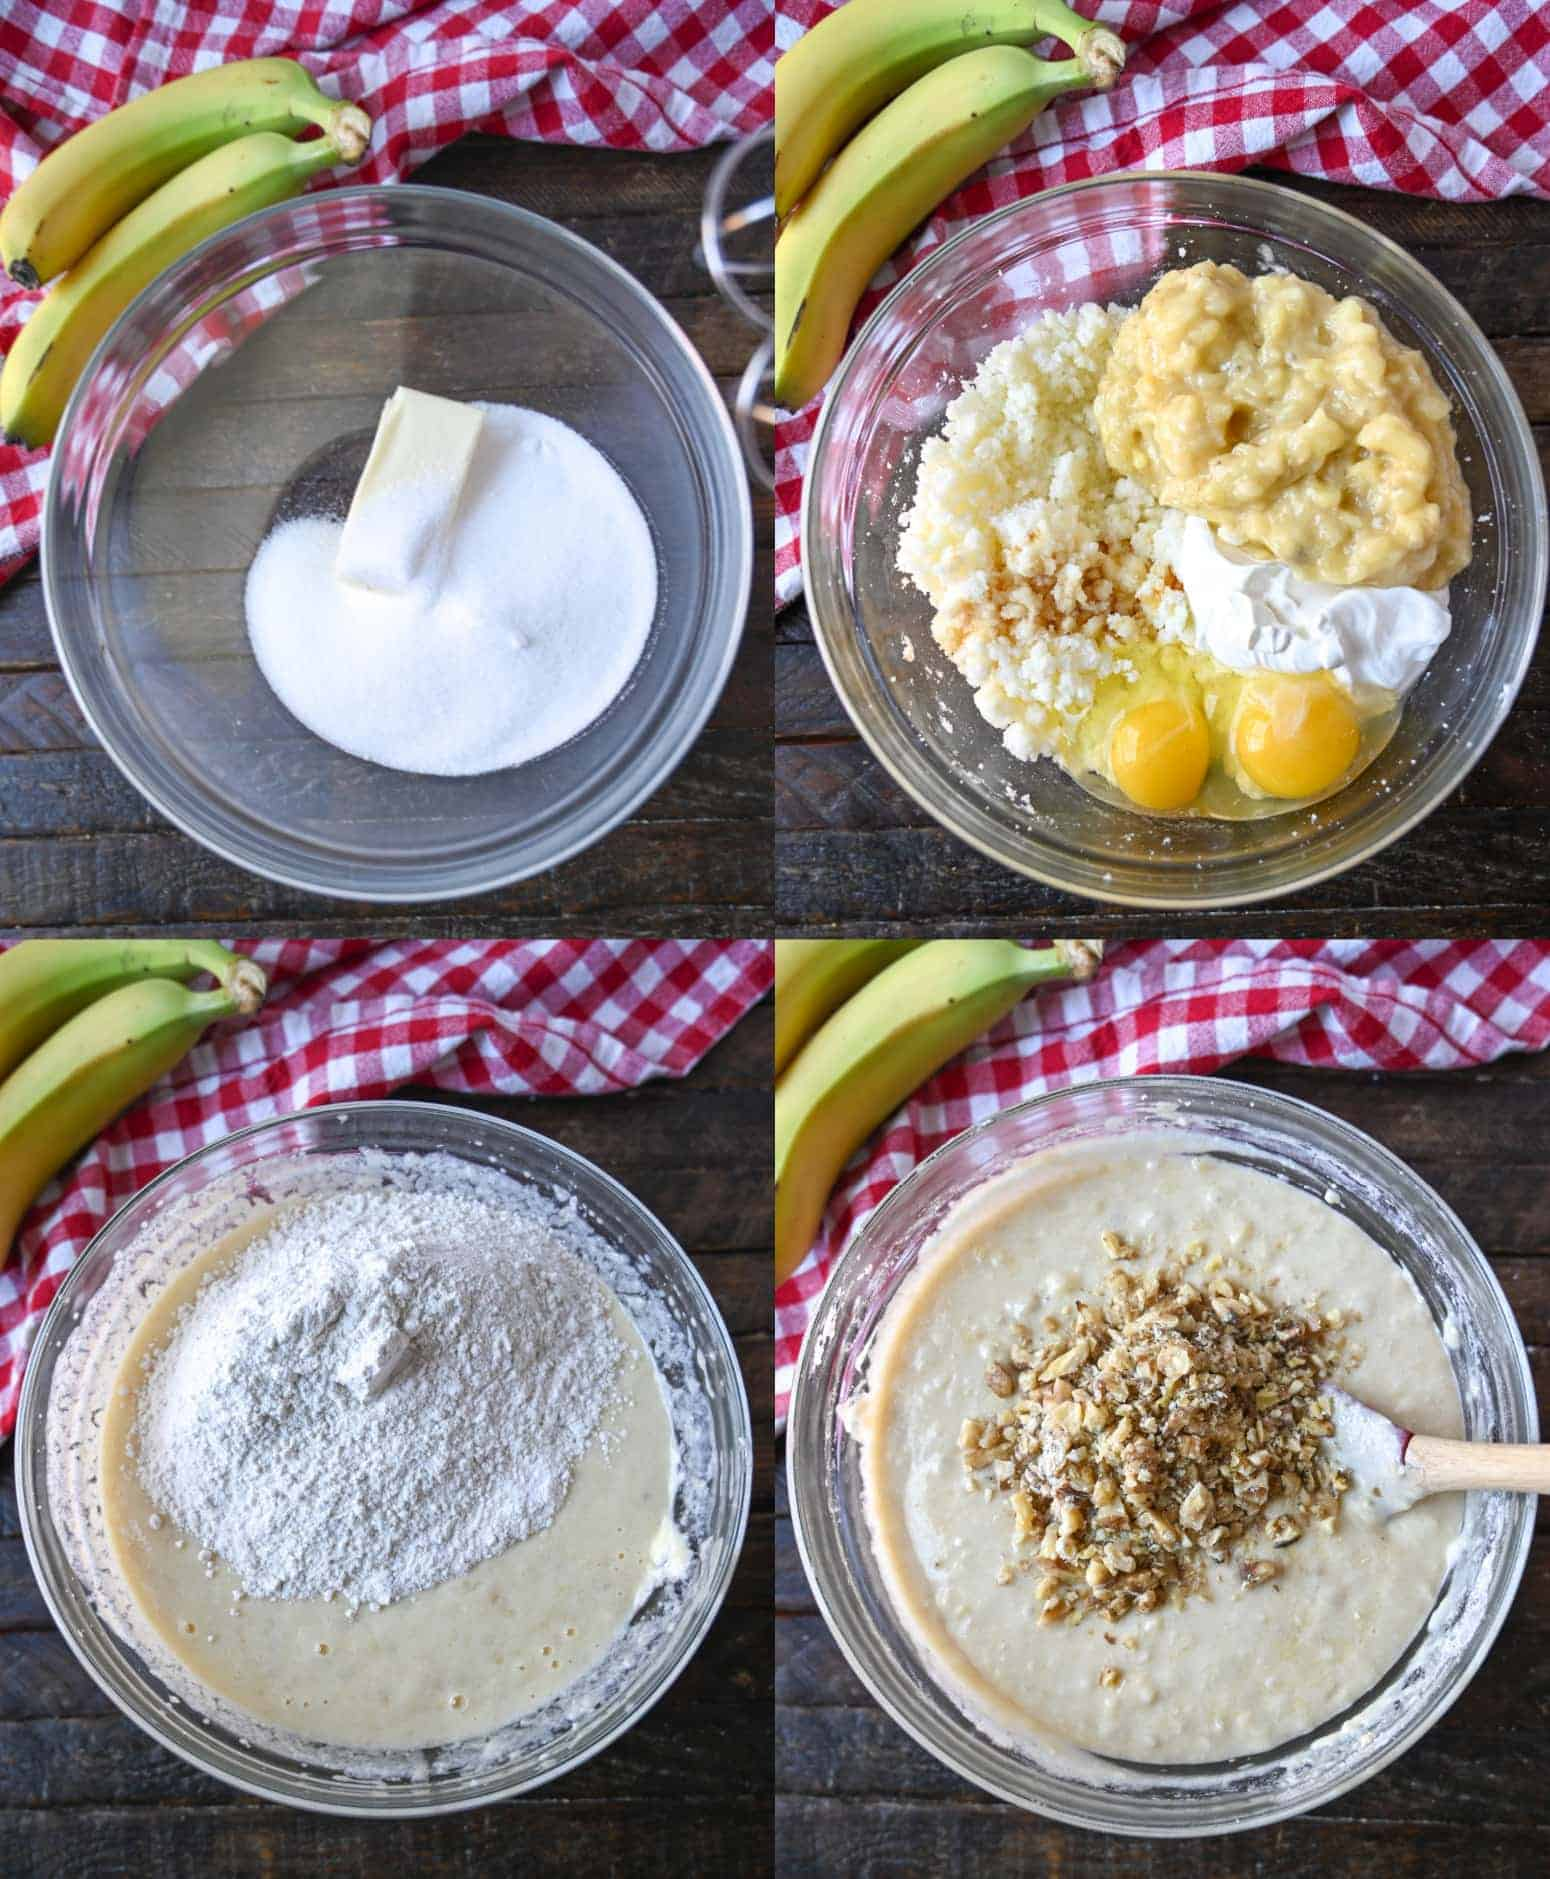 Four process photos. First one, gugar and butter in a bowl. Secone one, the rest of the wet ingredients placed on top. Third one, dry ingredients placed on top of the mixed wet. Fourth one, chopped walnuts placed on top and ready to be folded into the batter.